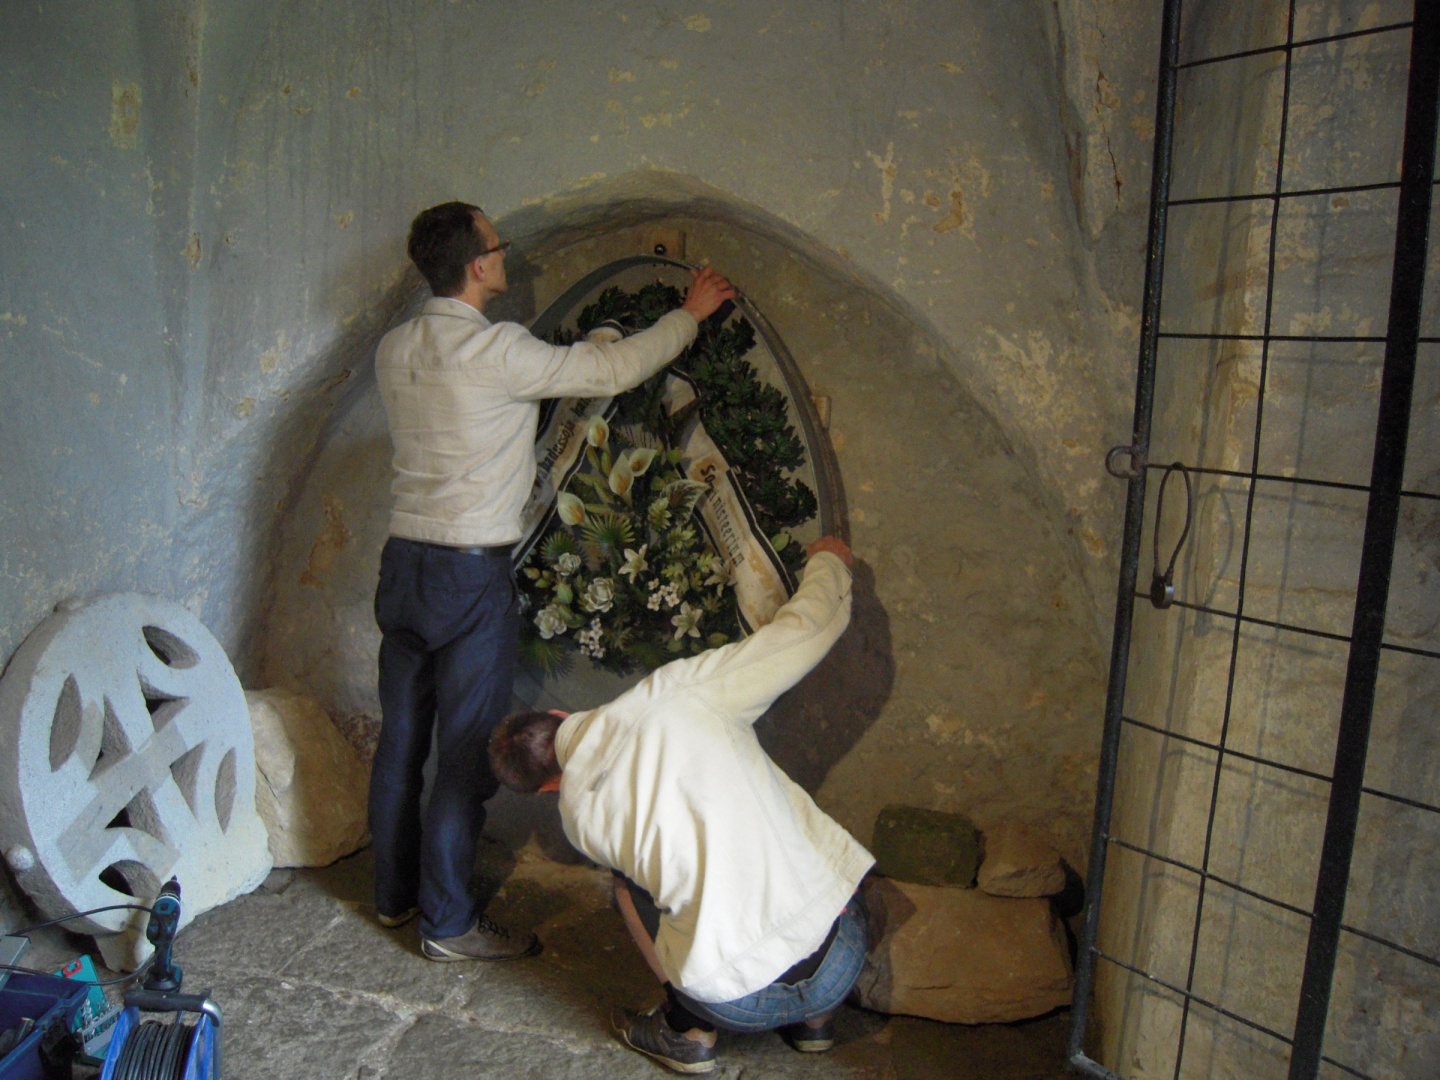 ill 26. Setting up the wreath on the wall of the vestibule of the Risti church.